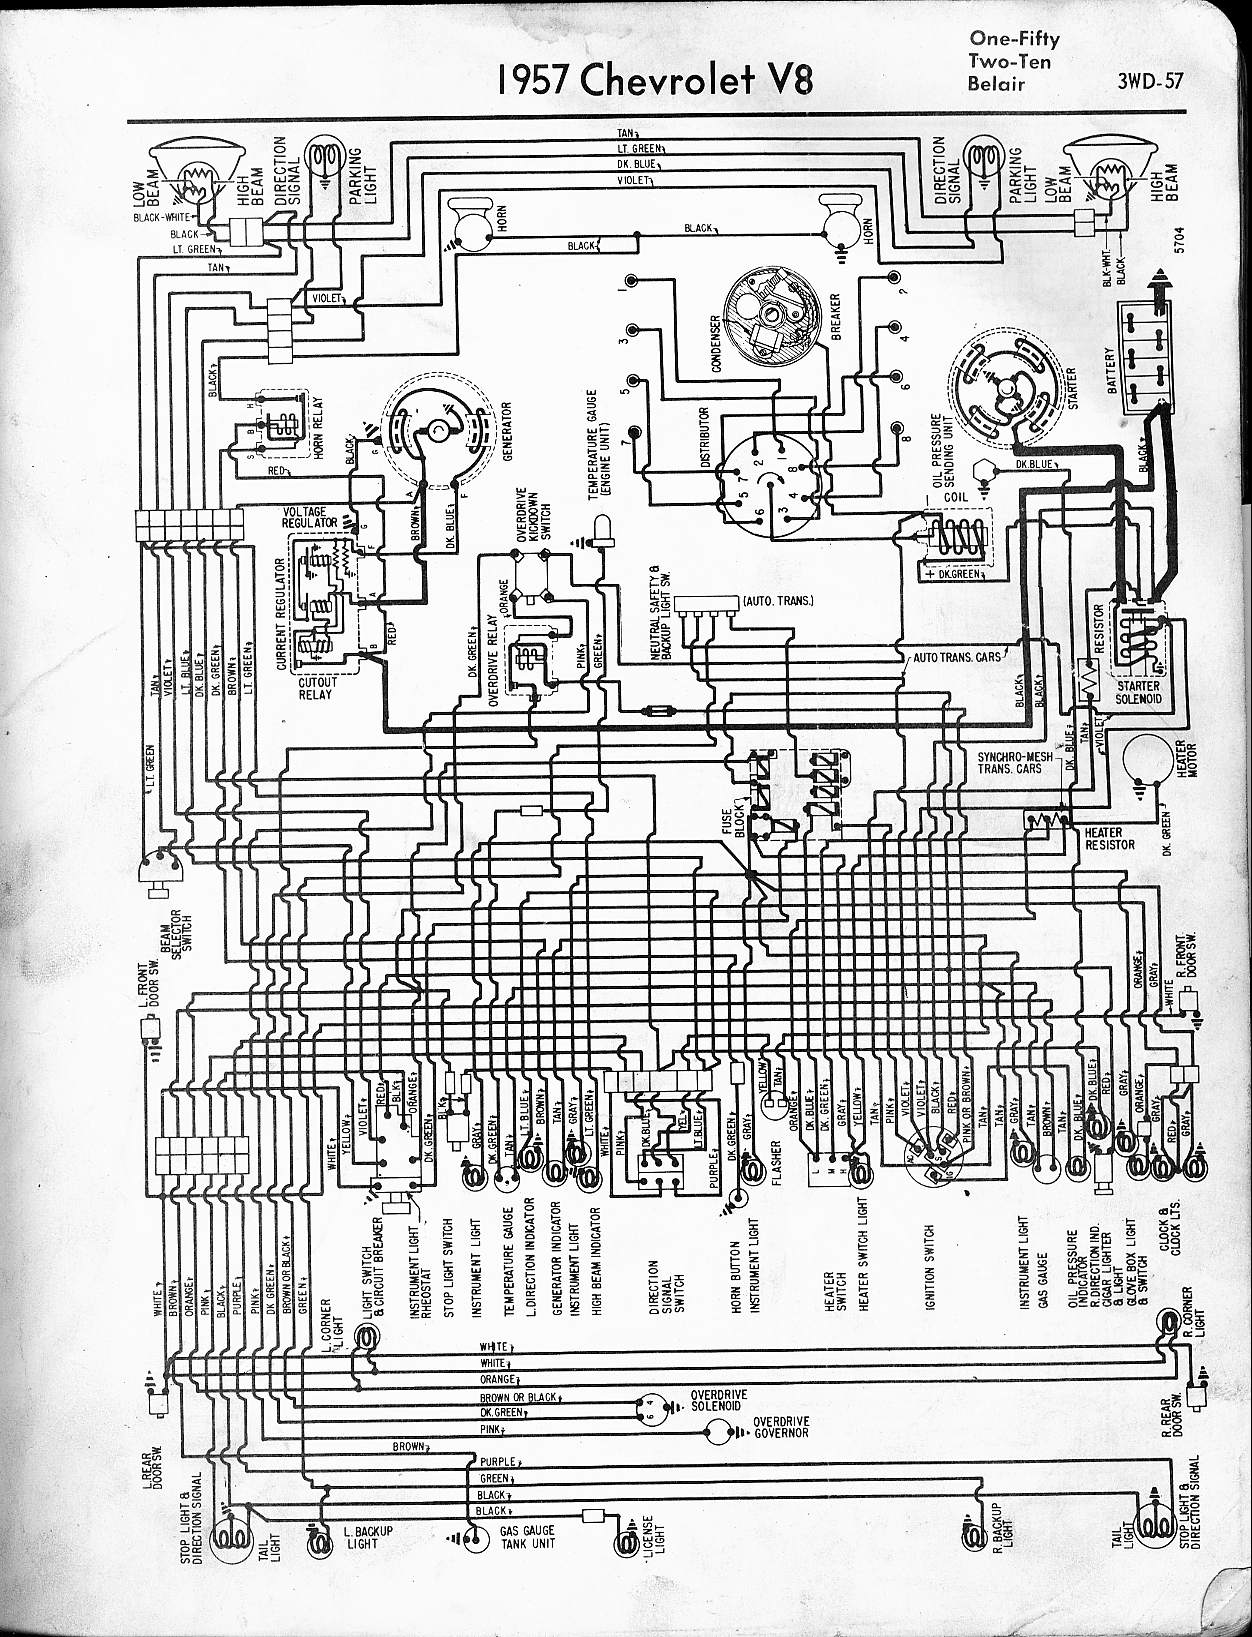 MWireChev57_3WD 057 neutral safety switch, 57 powerglide trifive com, 1955 chevy 1957 chevrolet wiring diagram at gsmx.co